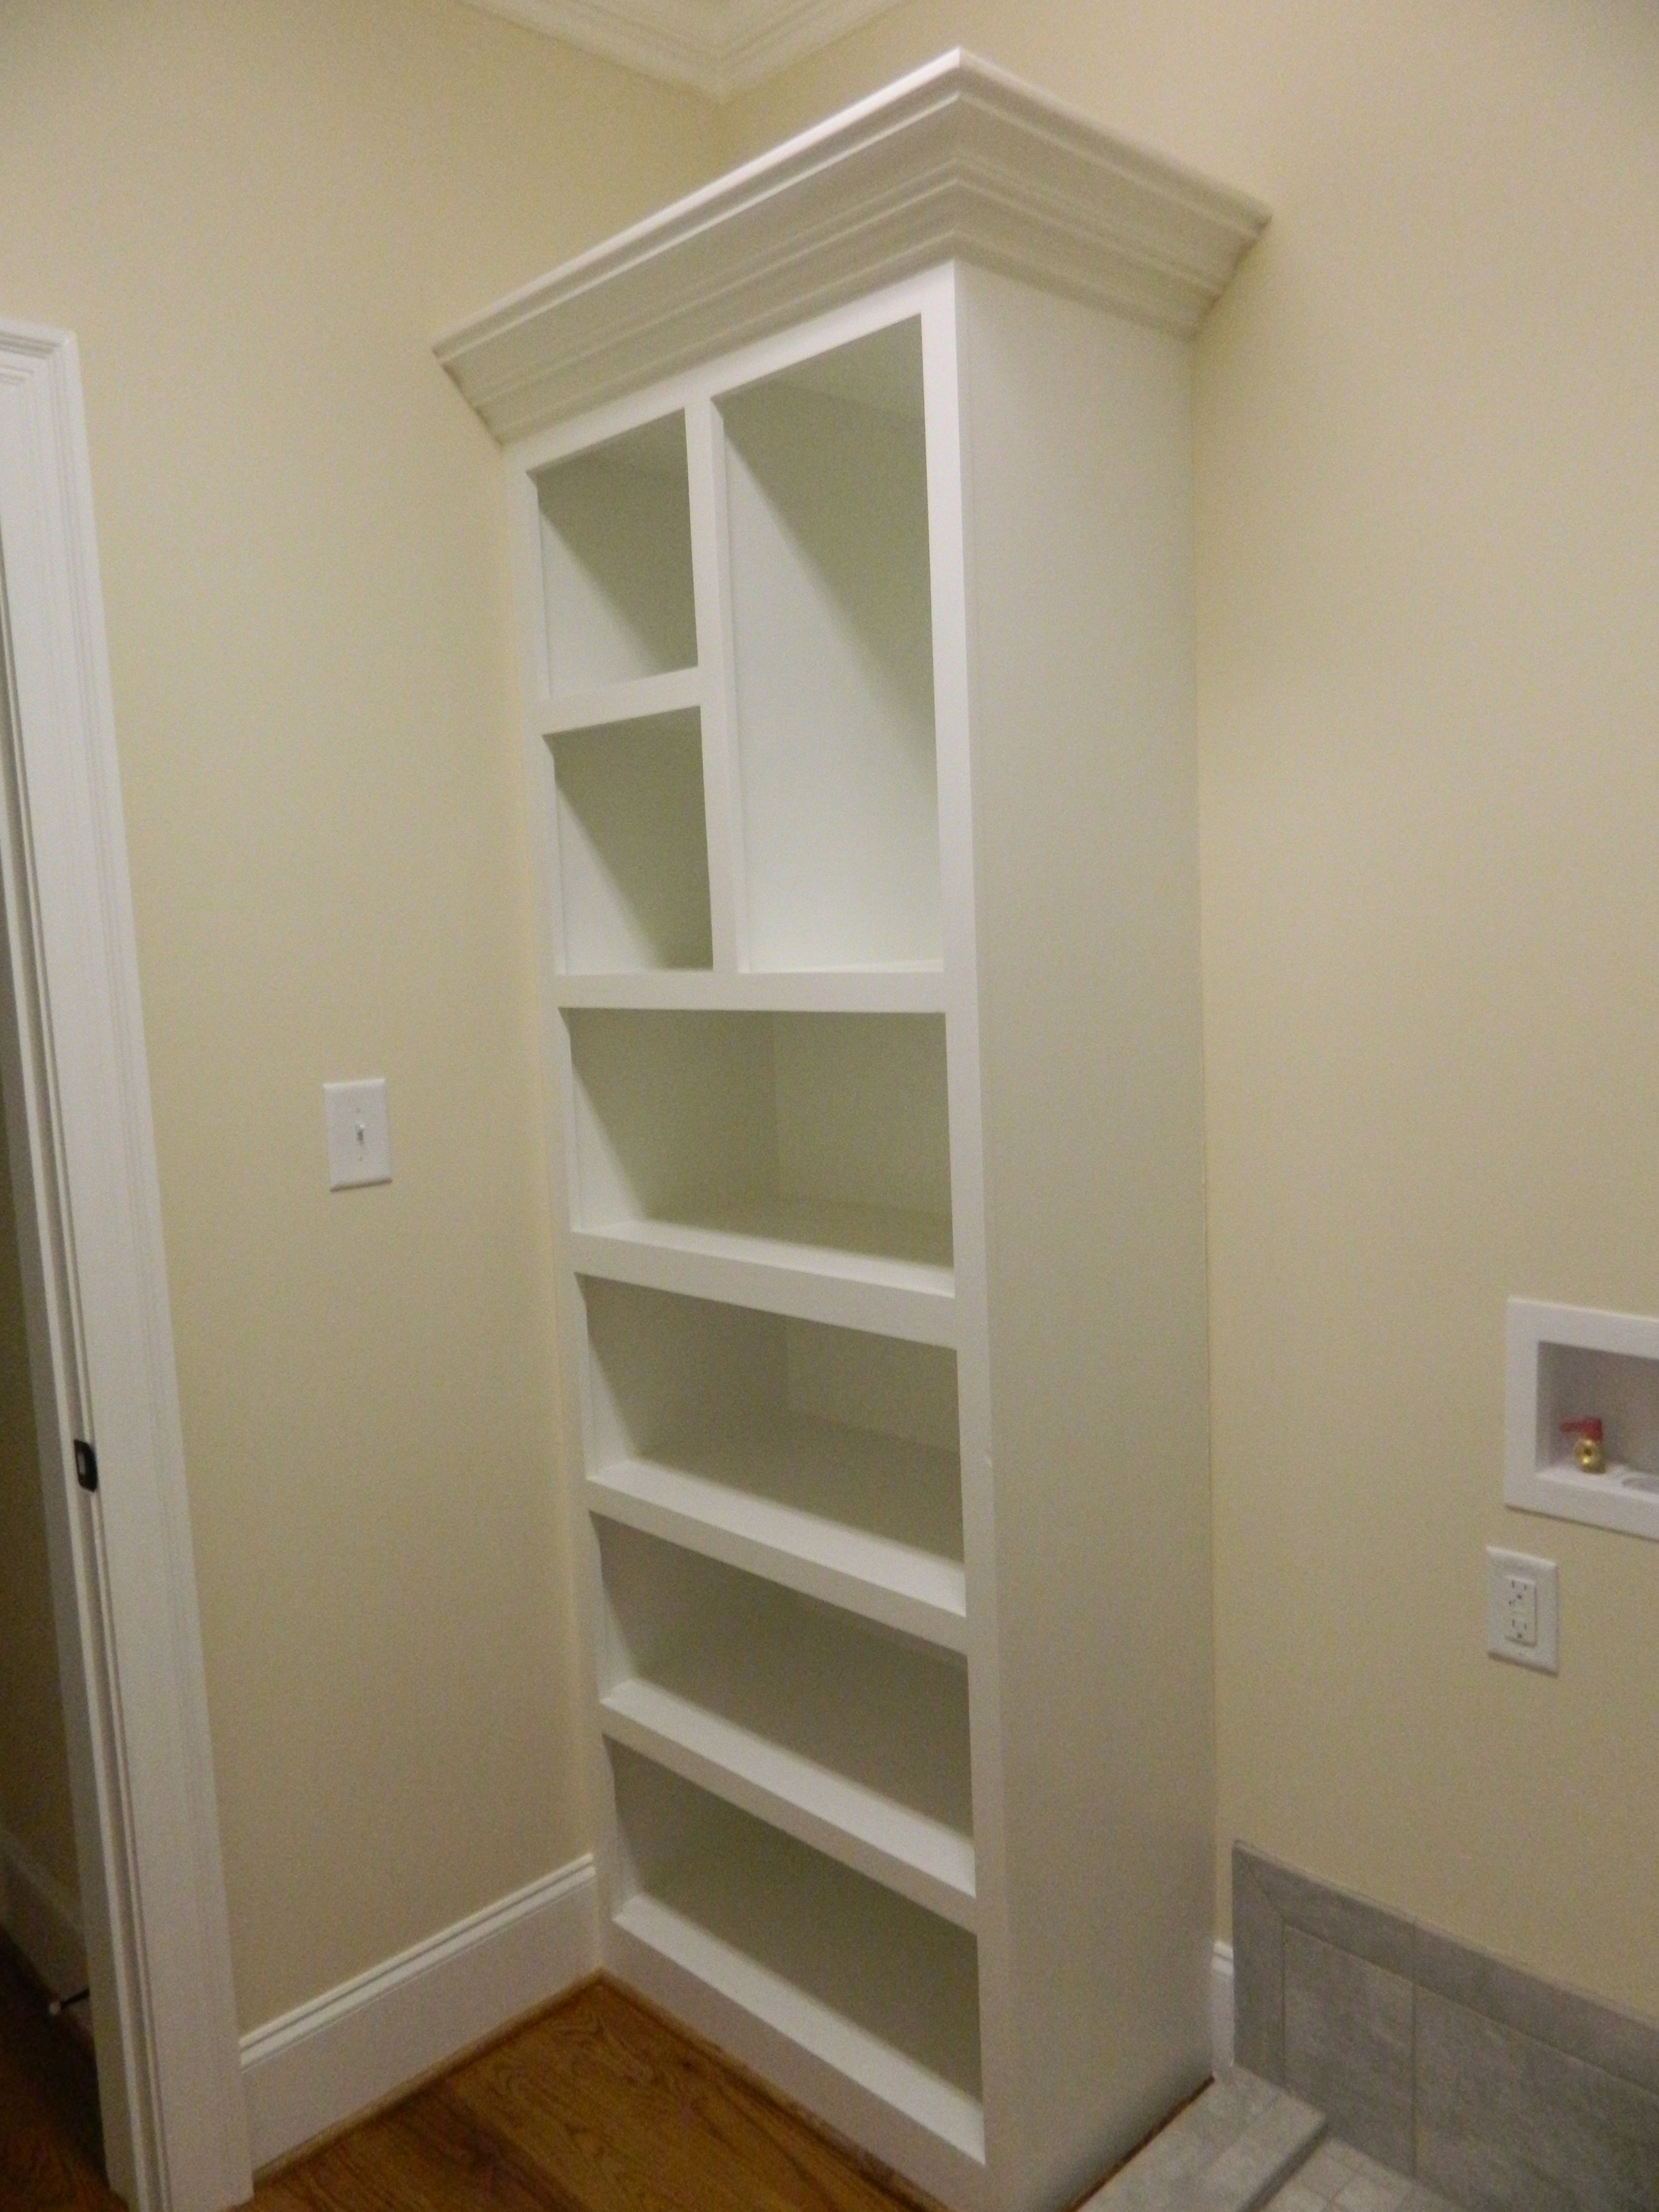 412 Thyme Pl. - Laundry Room Cabinet.JPG